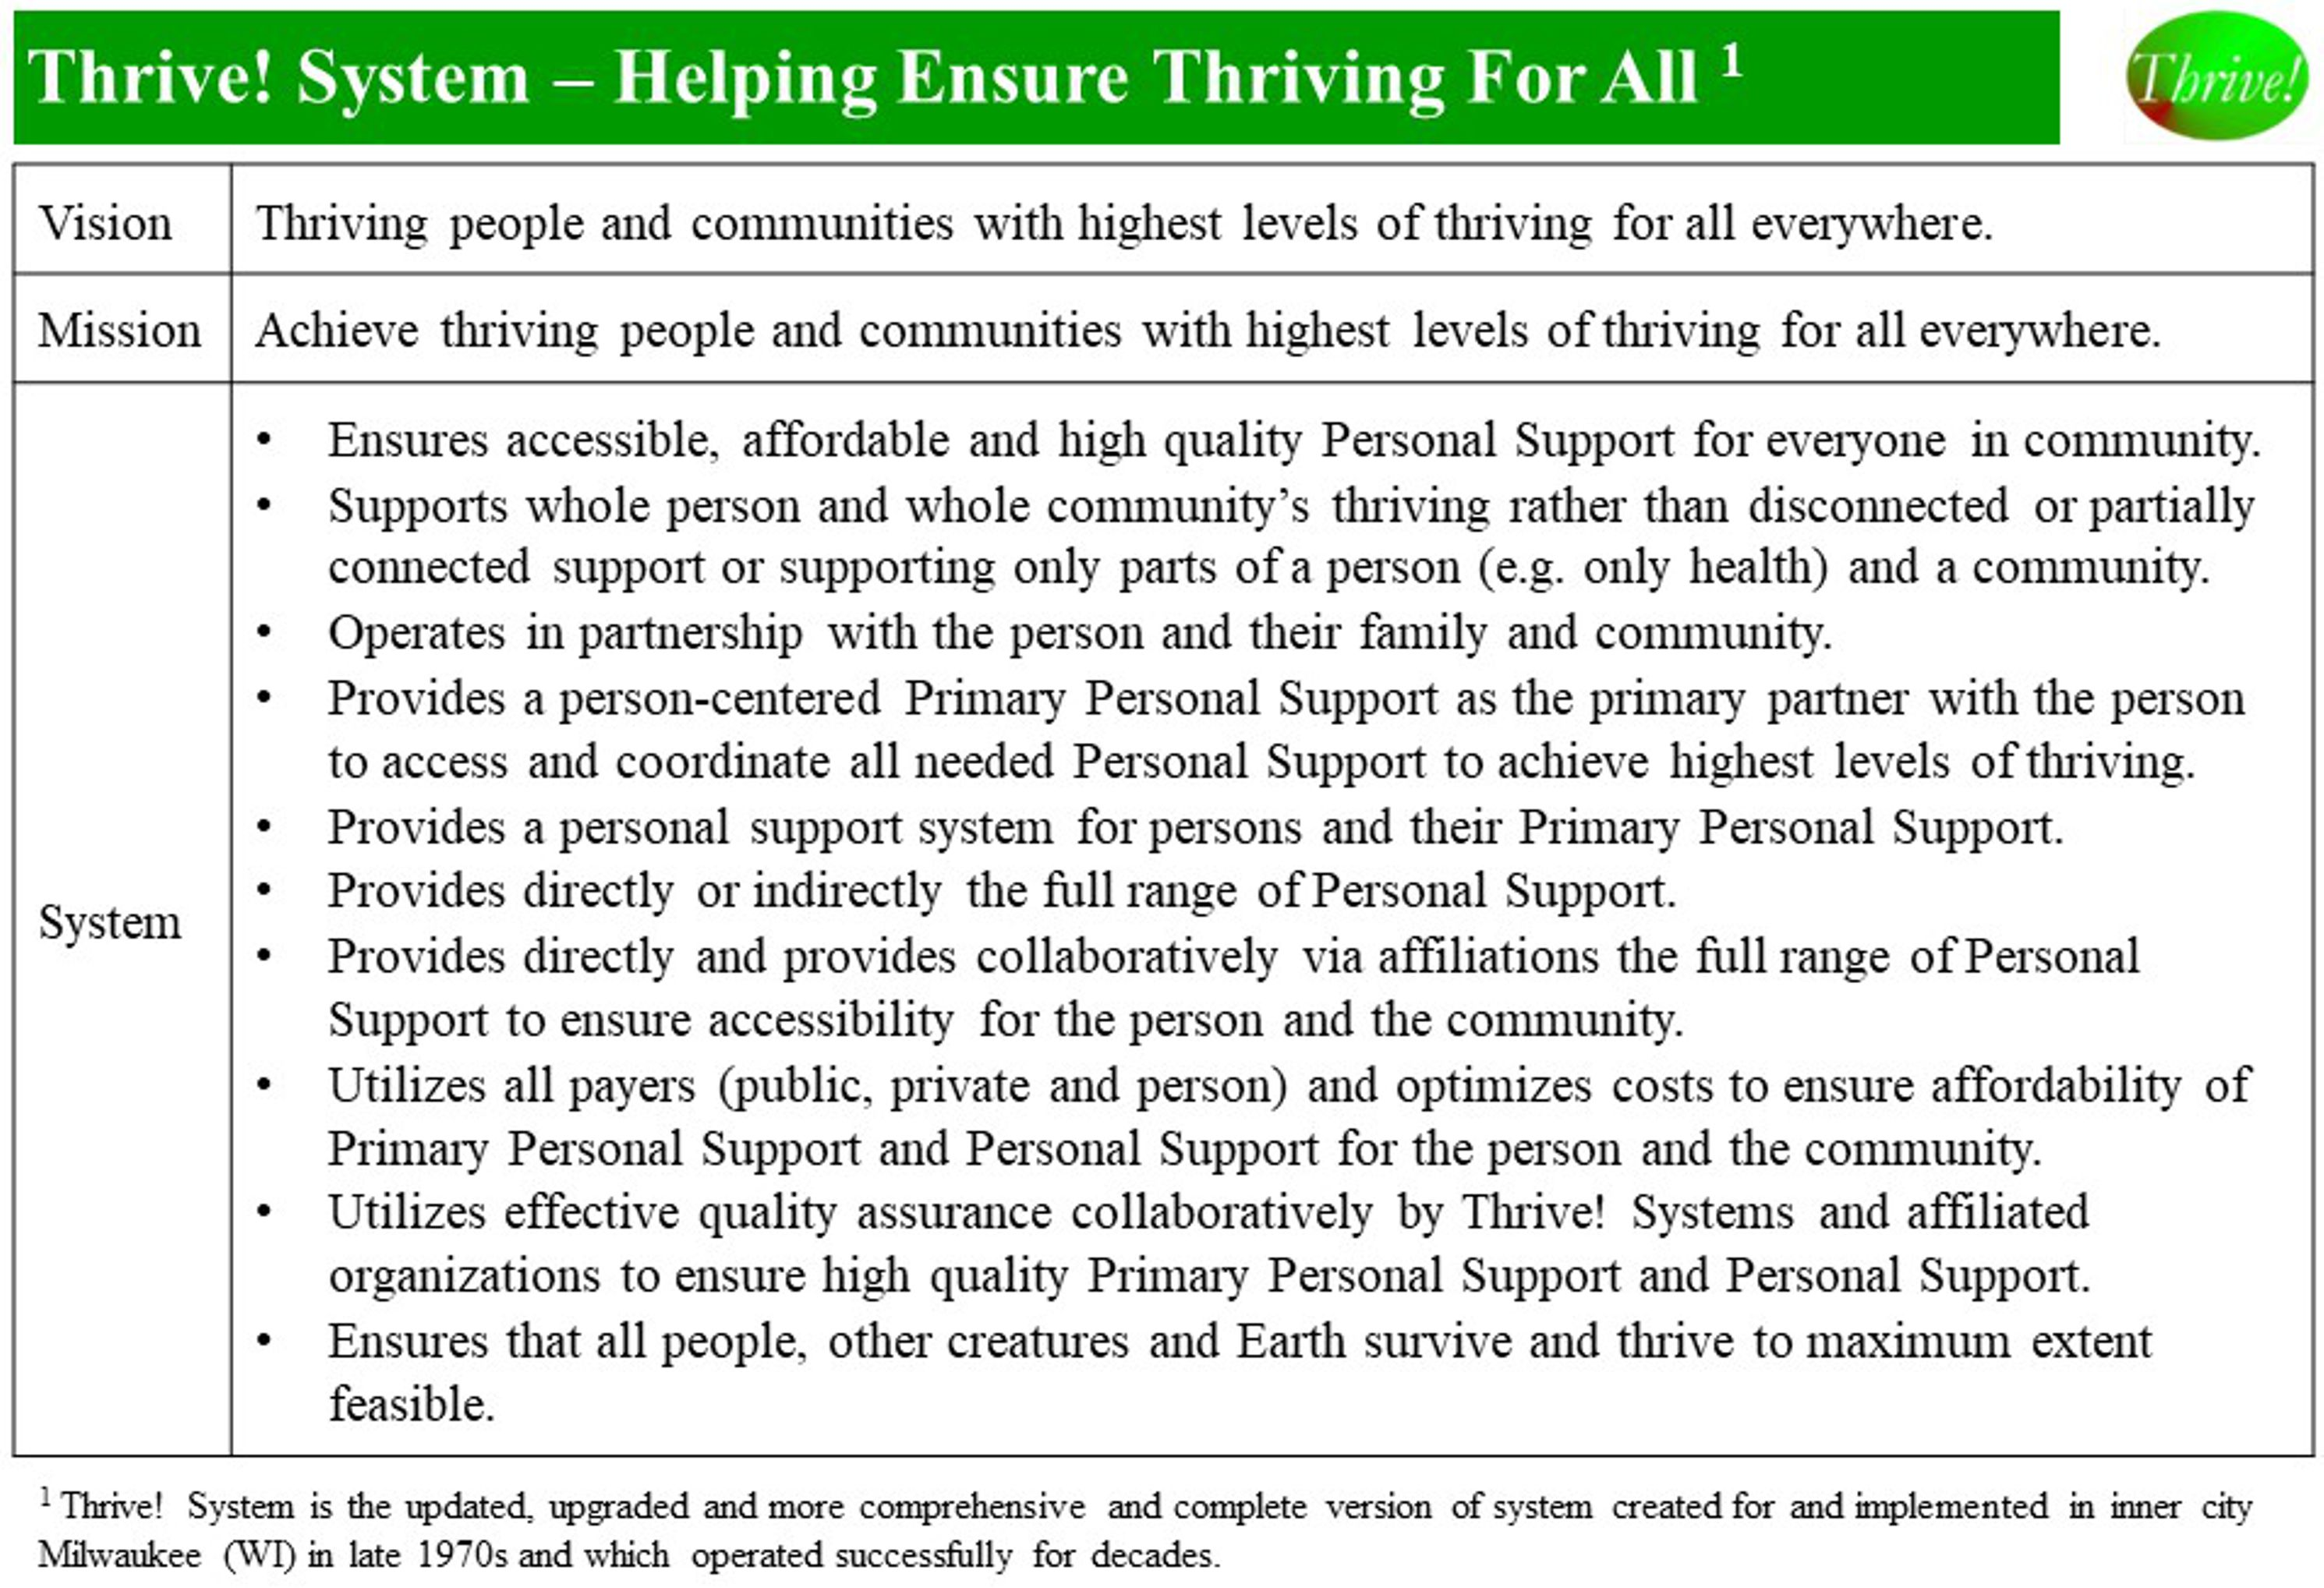 Thrive! Systems